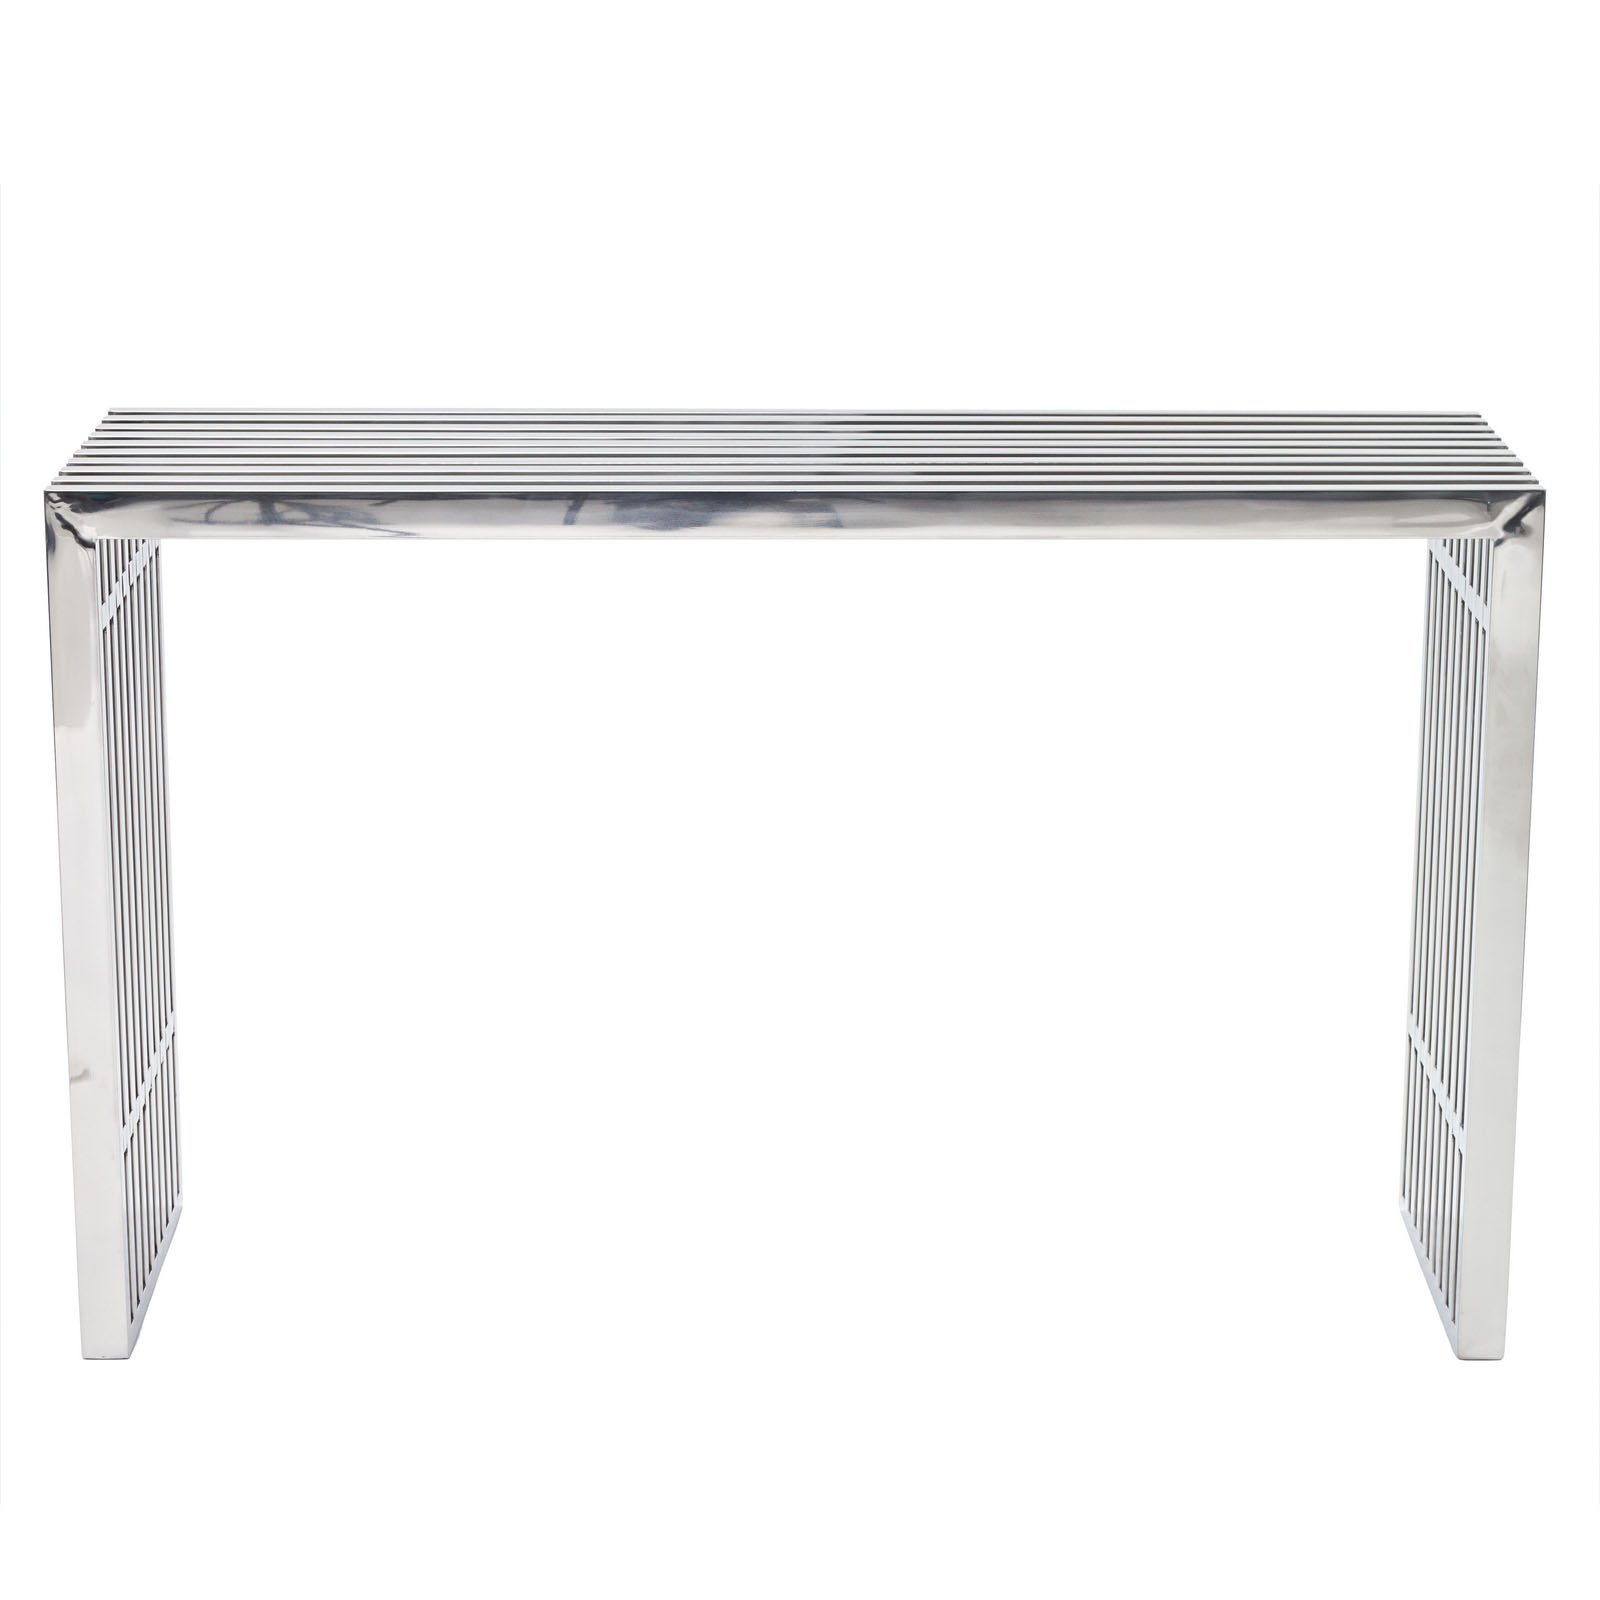 Modway Gridiron Stainless Steel Console Table